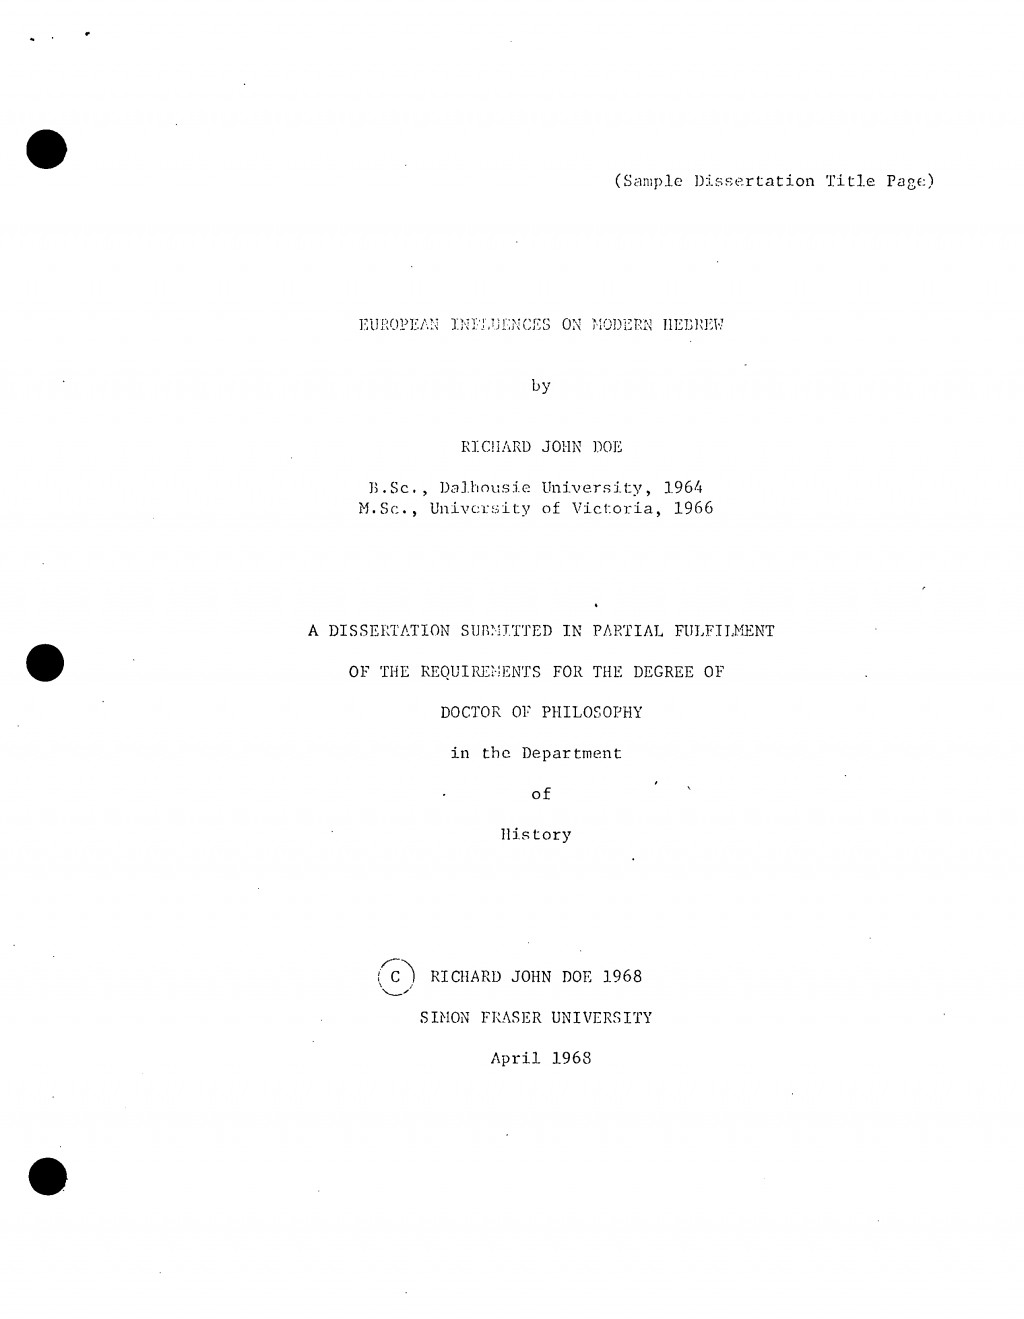 027 Cover Page Template For Research Paper Striking A Title Example Layout Format Large